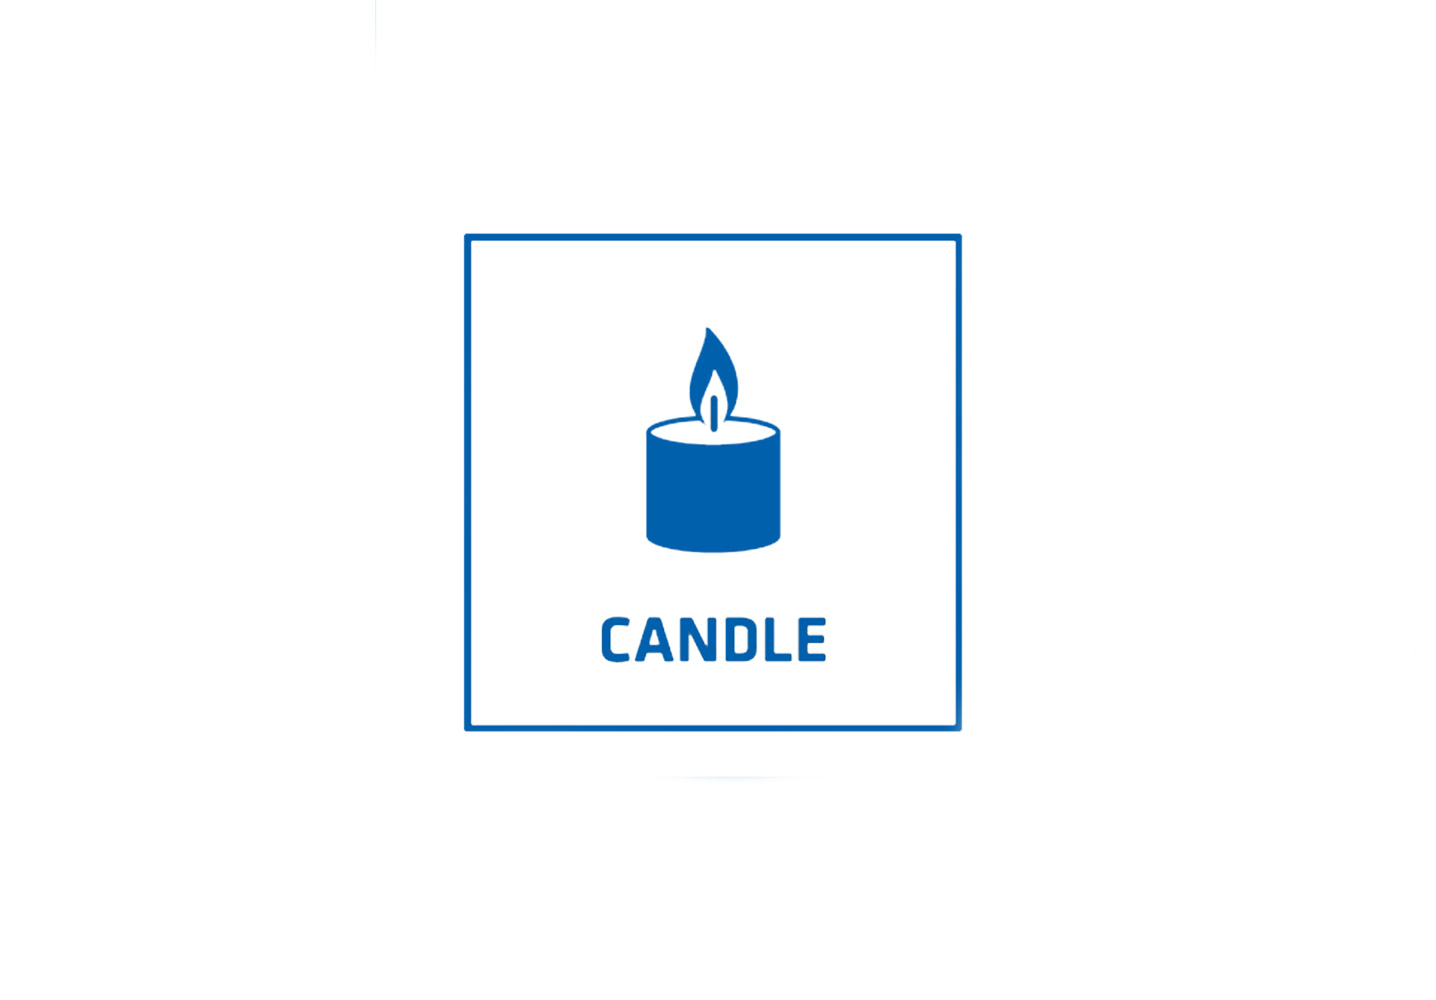 lighting effects_candle